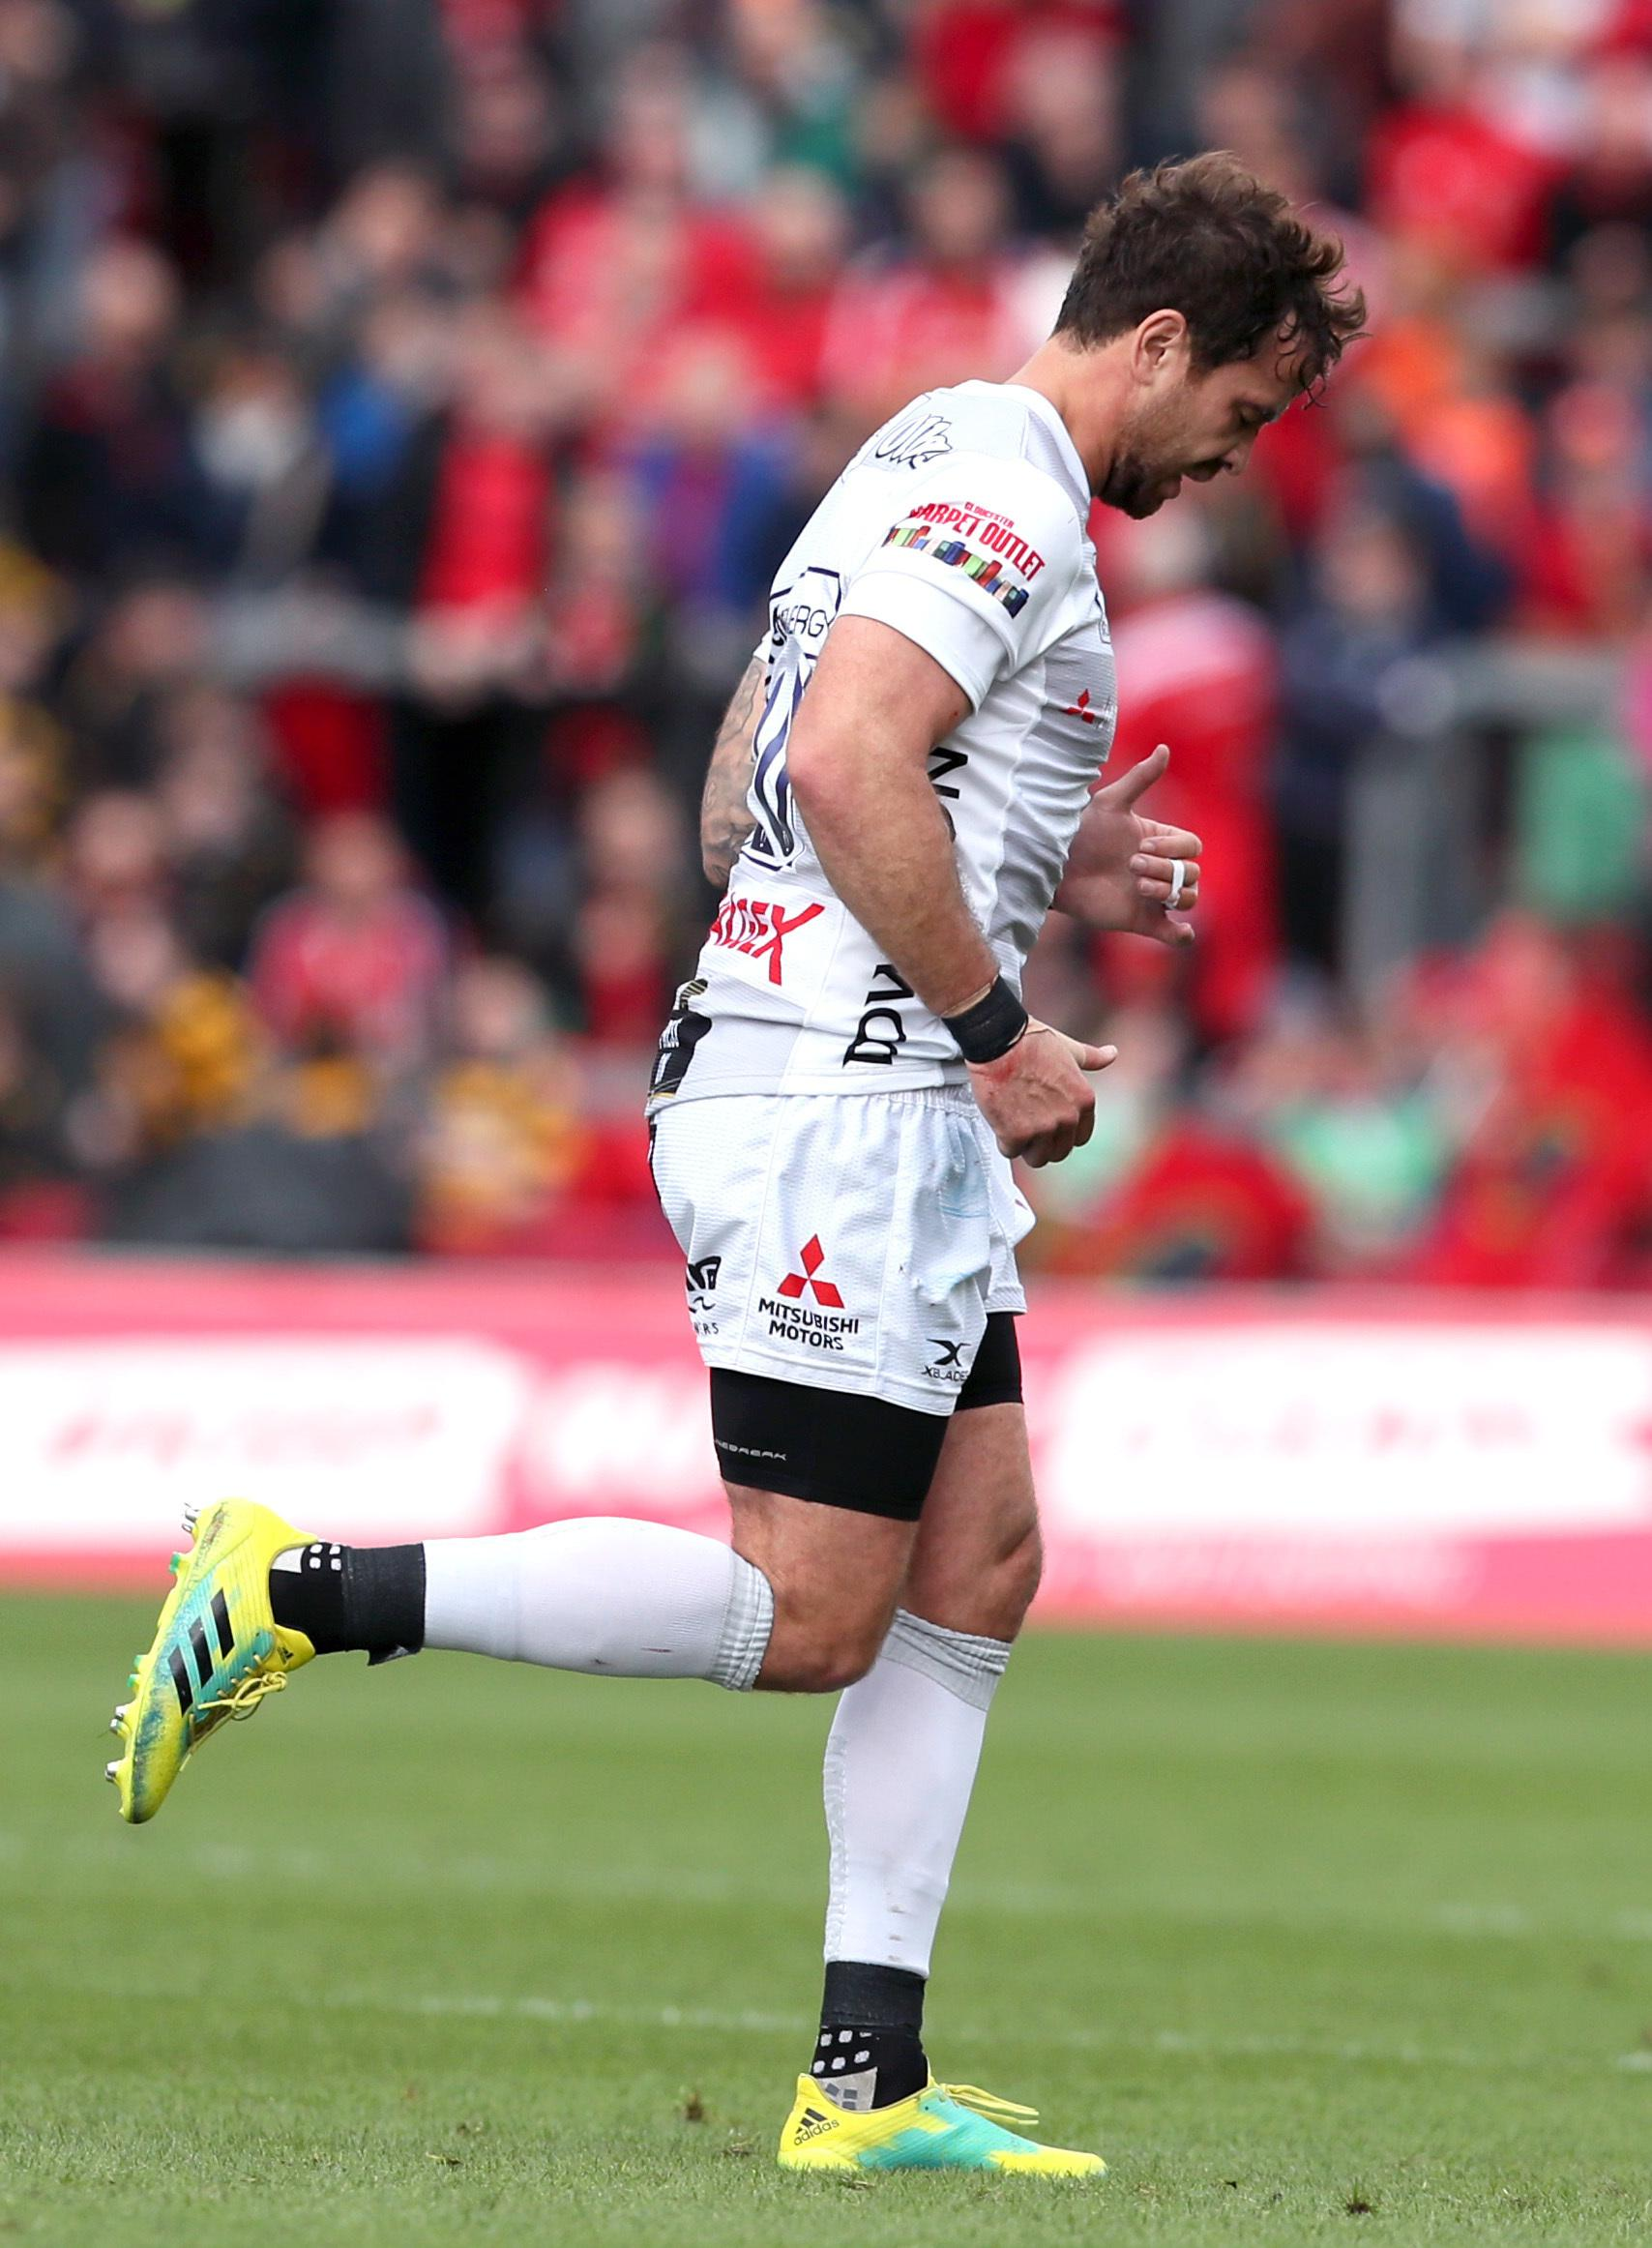 Danny Cipriani slumps off after getting his marching orders at the end of a tough week